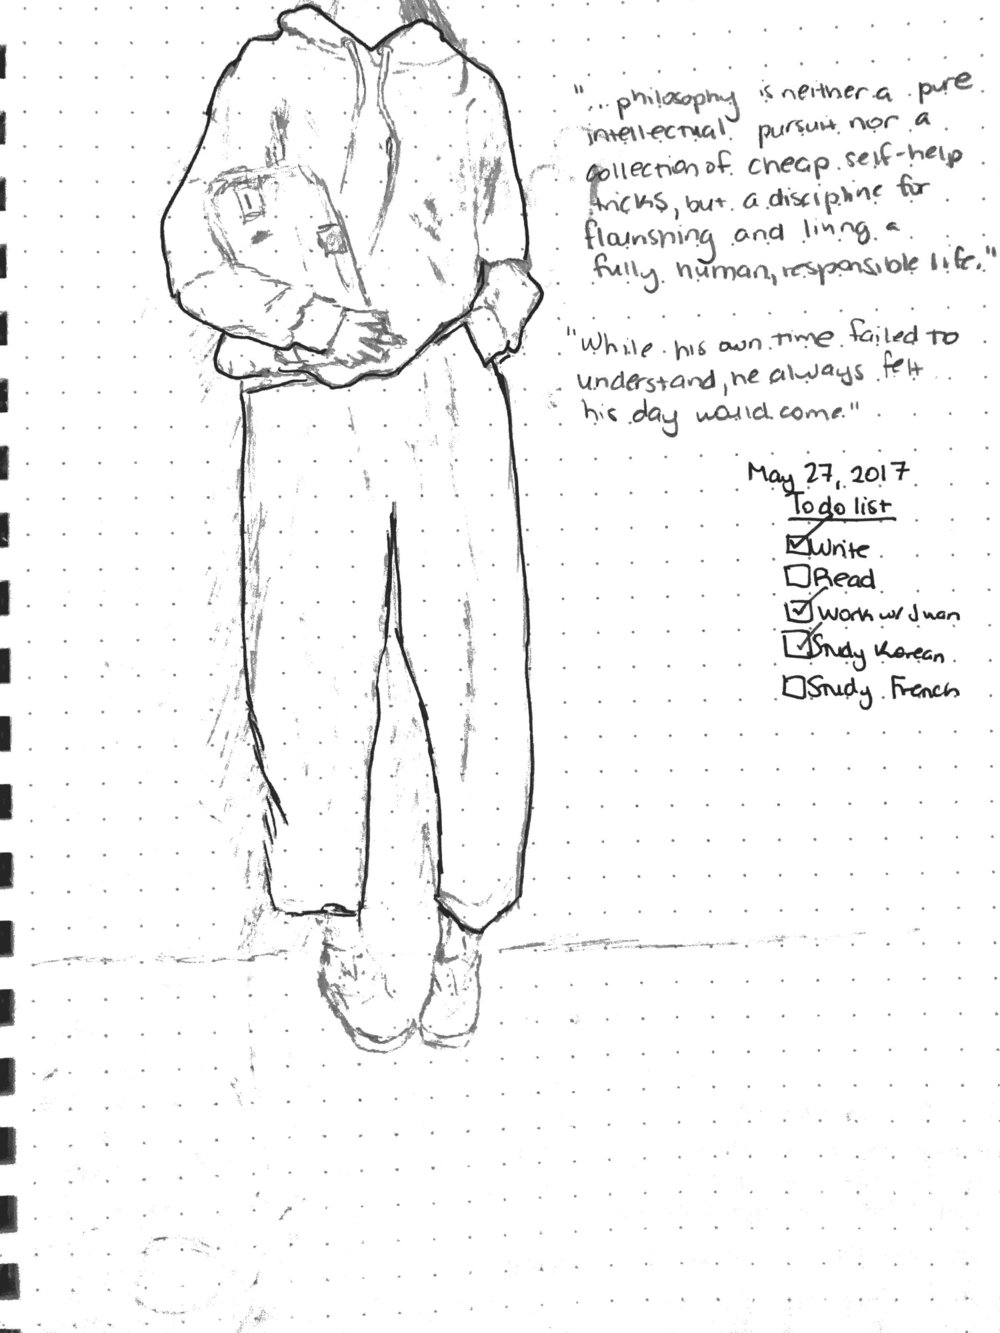 Journal Scans page 6.JPG